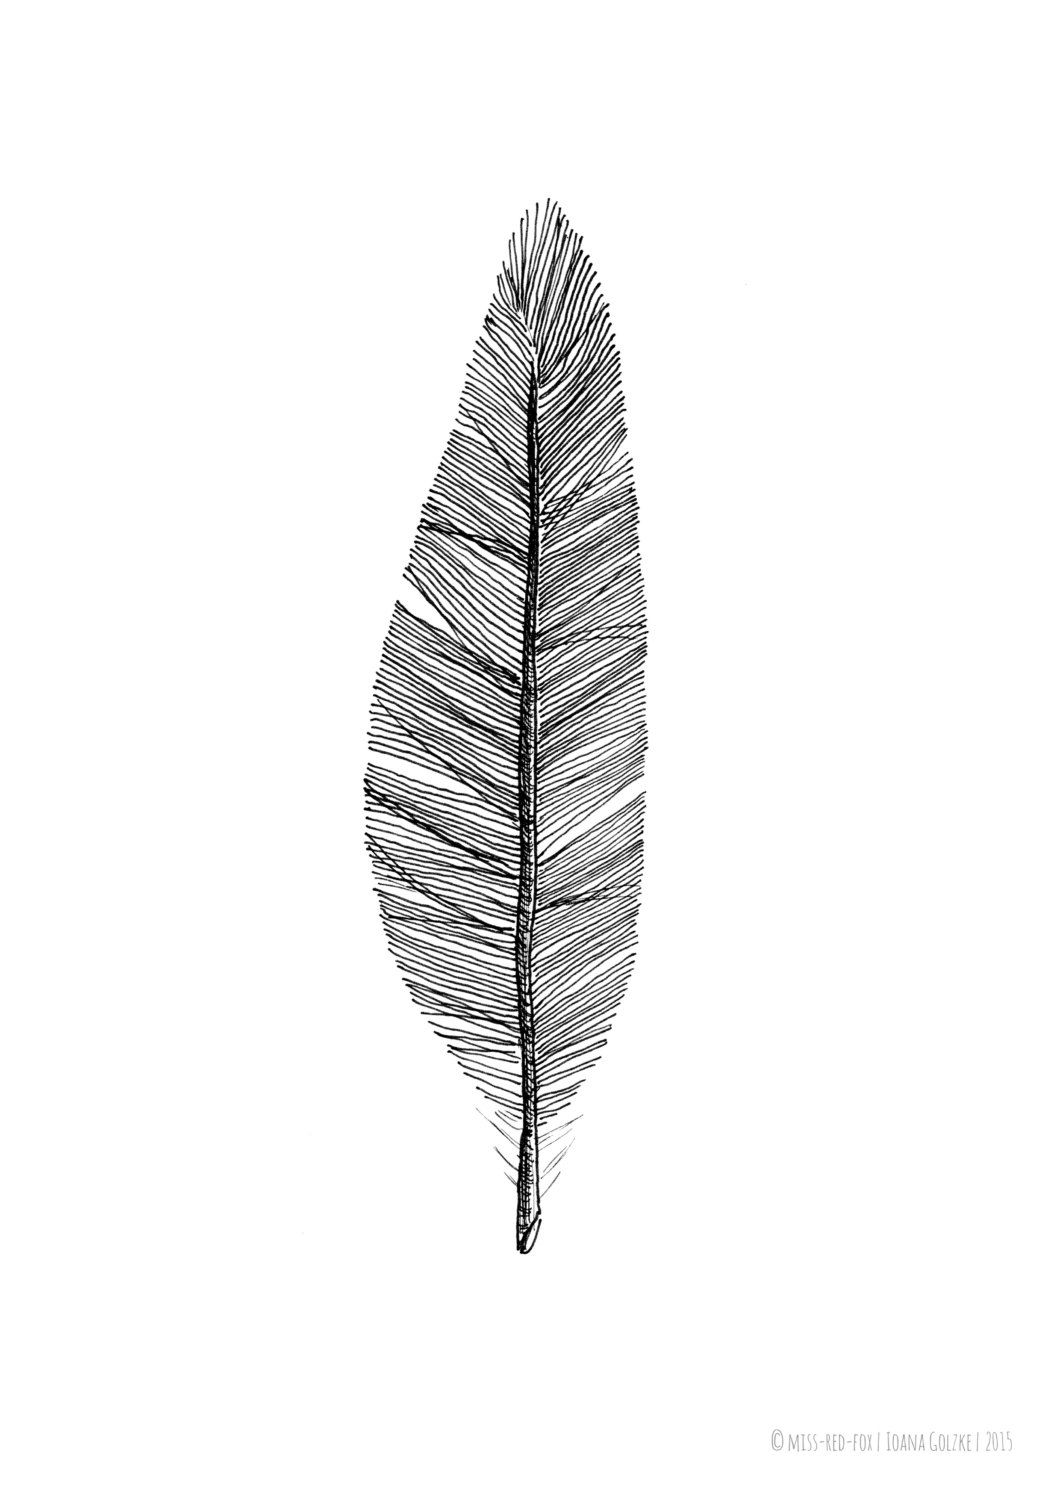 FEATHER, poster, print, black and white, drawing, illustration, gift ...